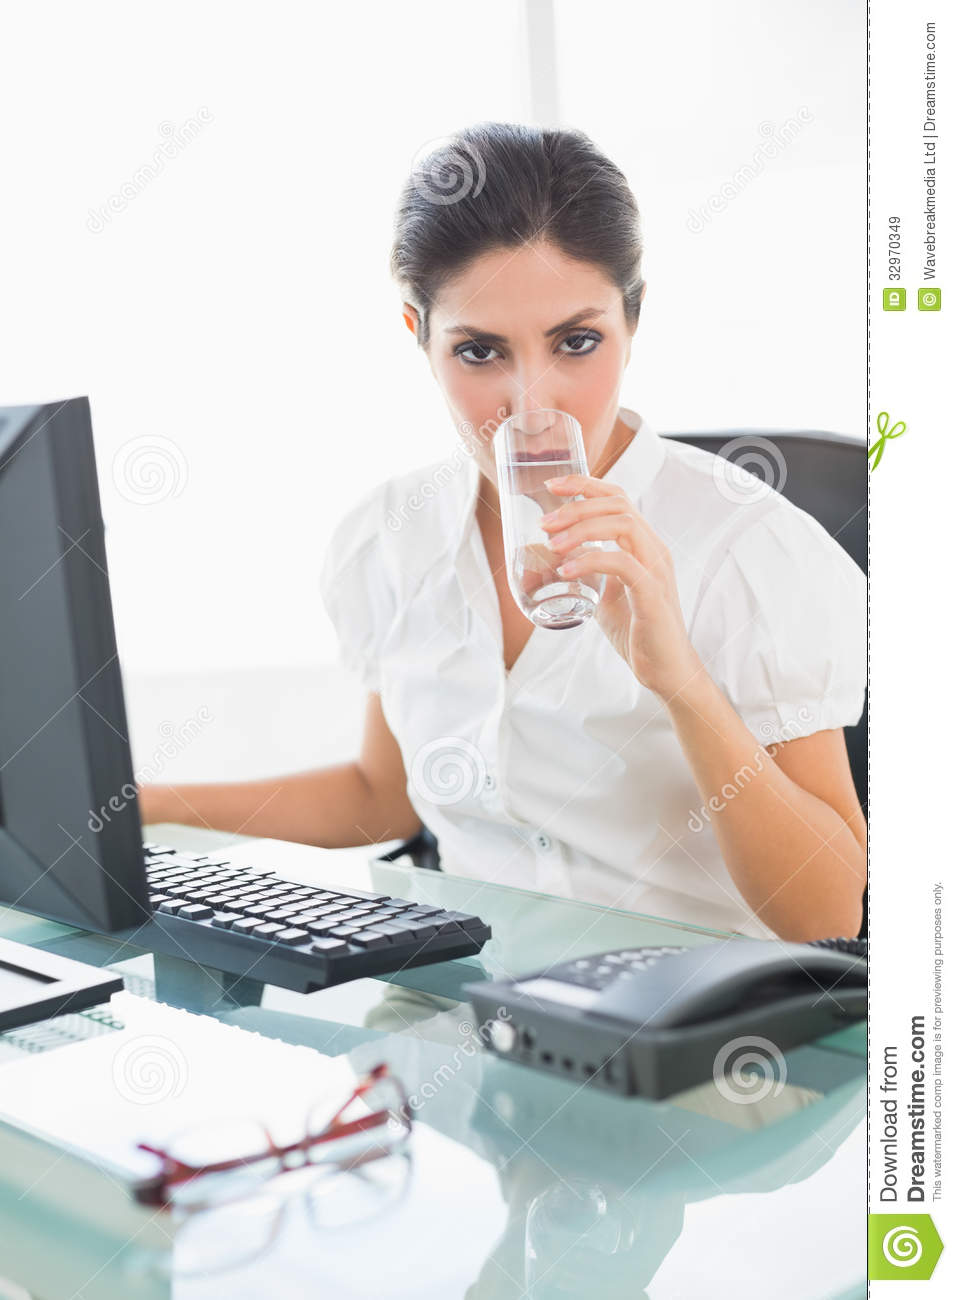 Stern Businesswoman Drinking A Glass Of Water At Her Desk